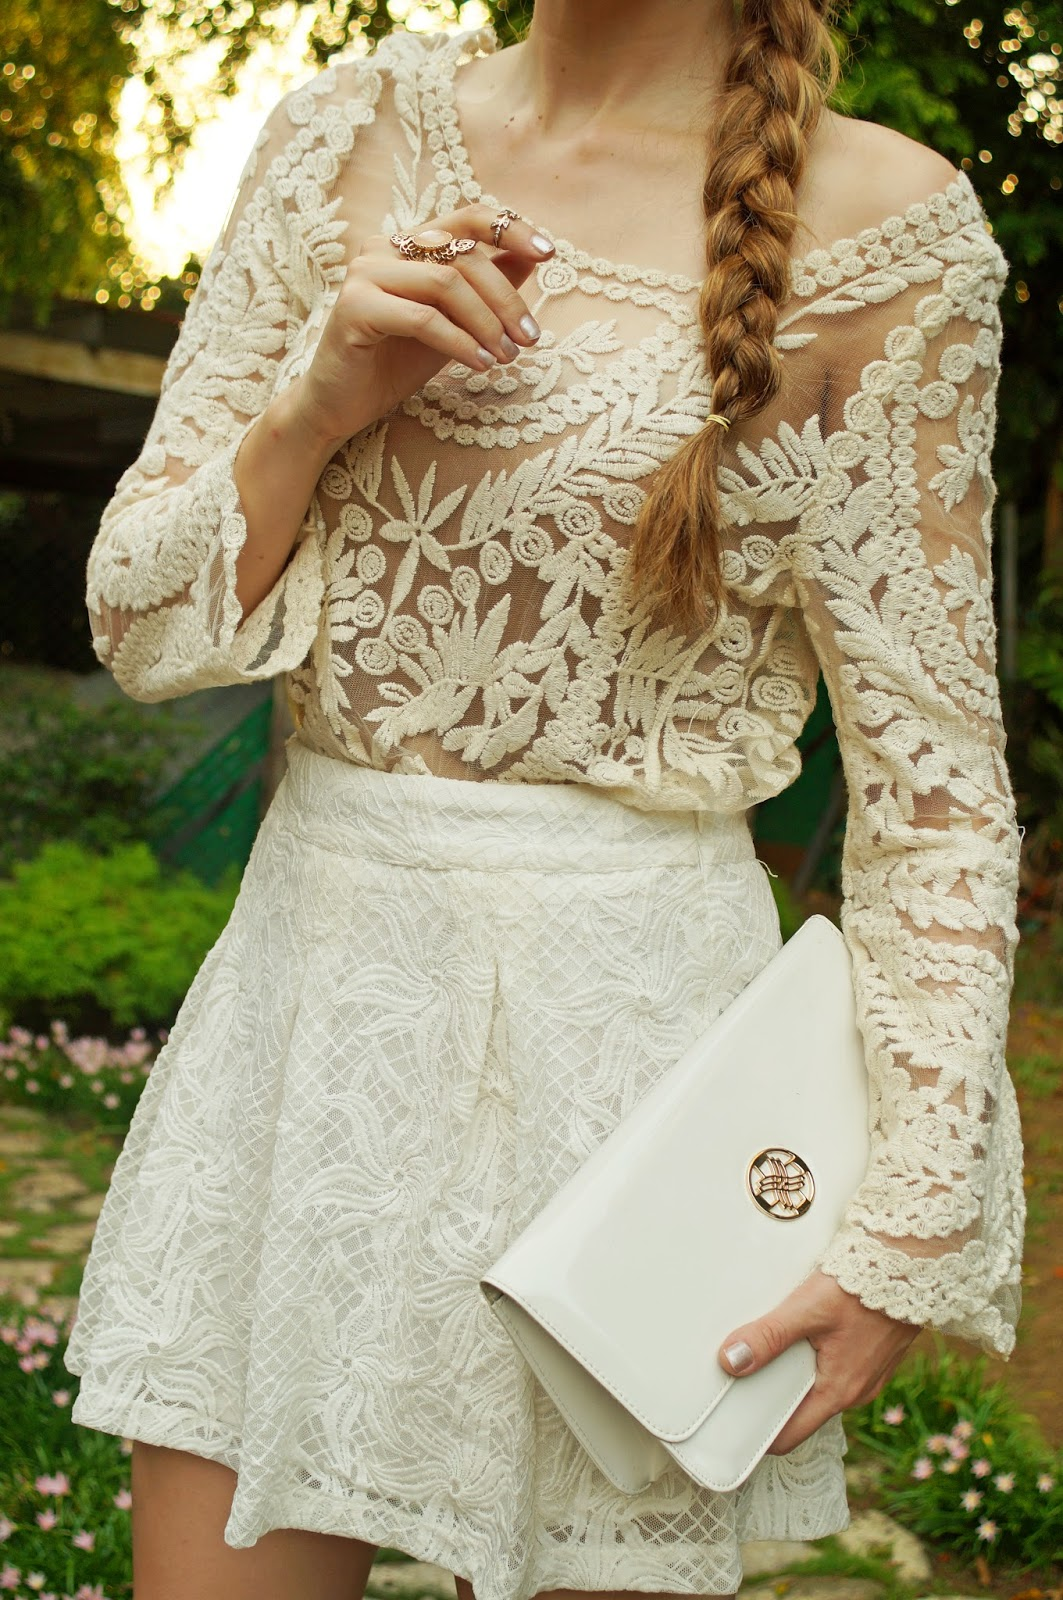 White Lace Outfit